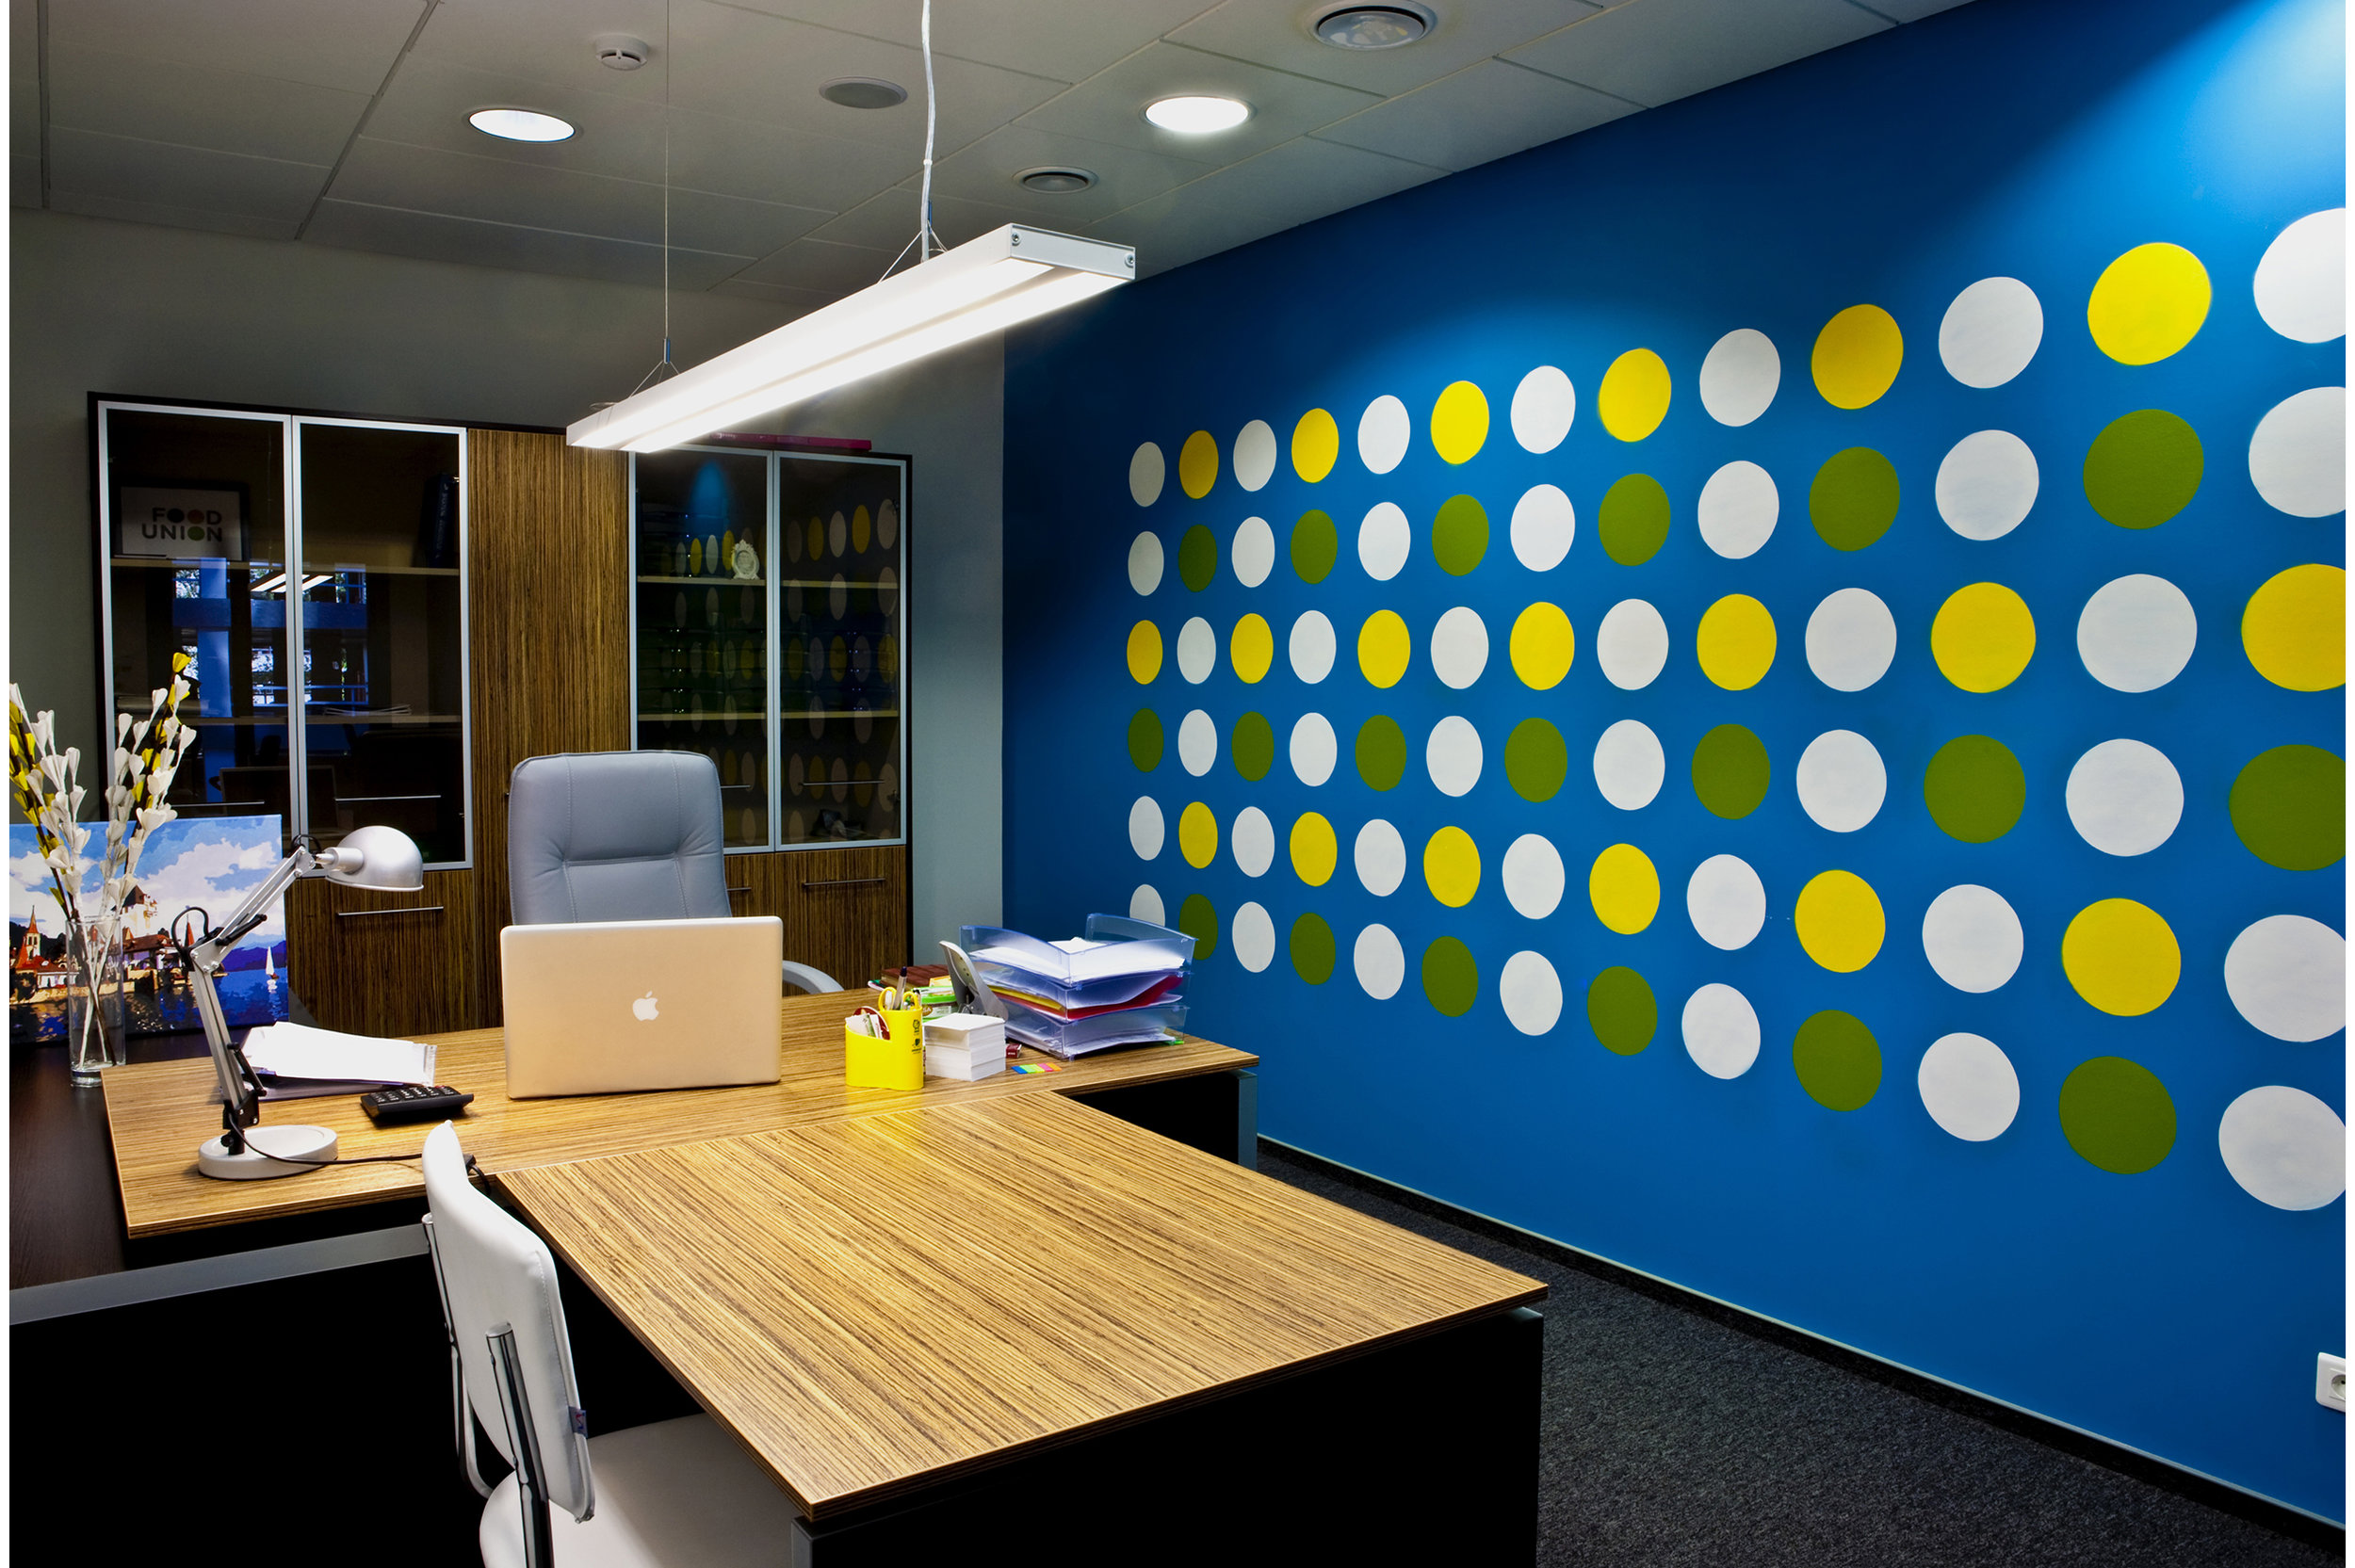 Office interior decorative mural